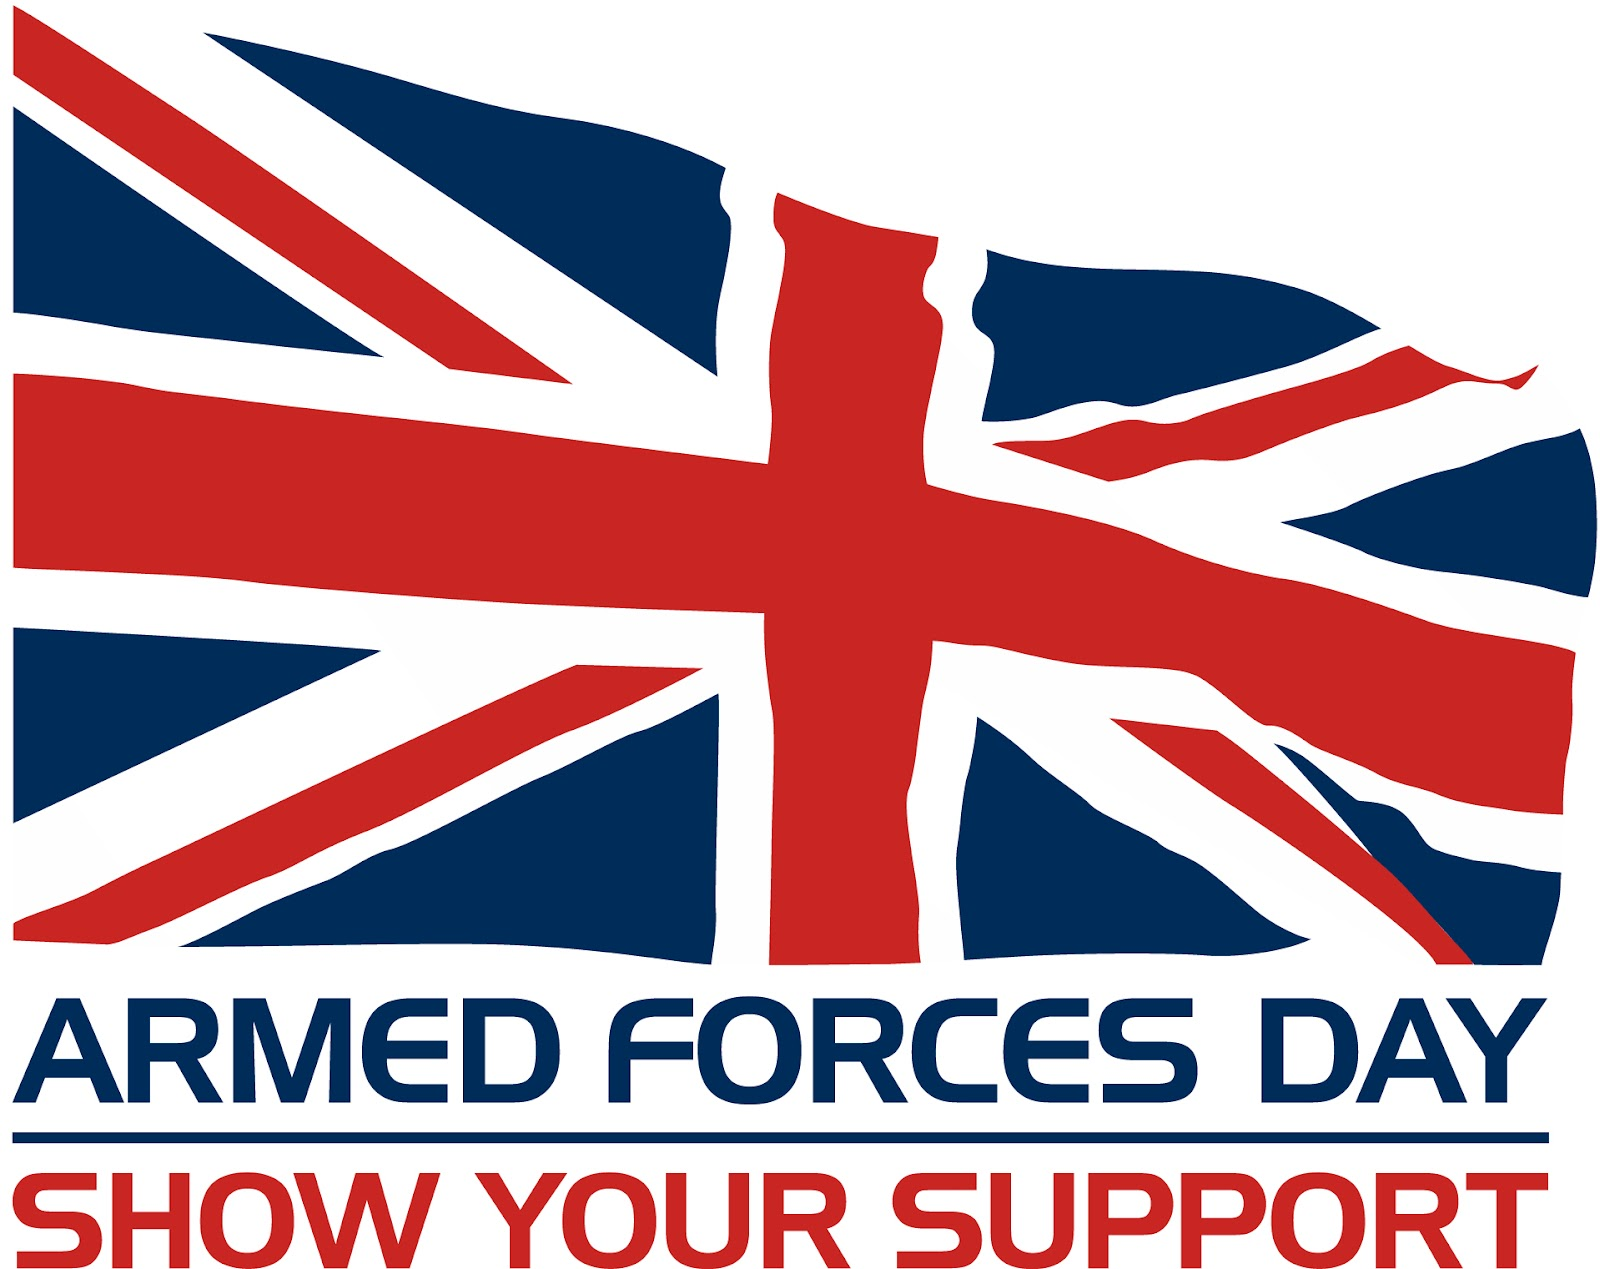 Armed forces dating uk